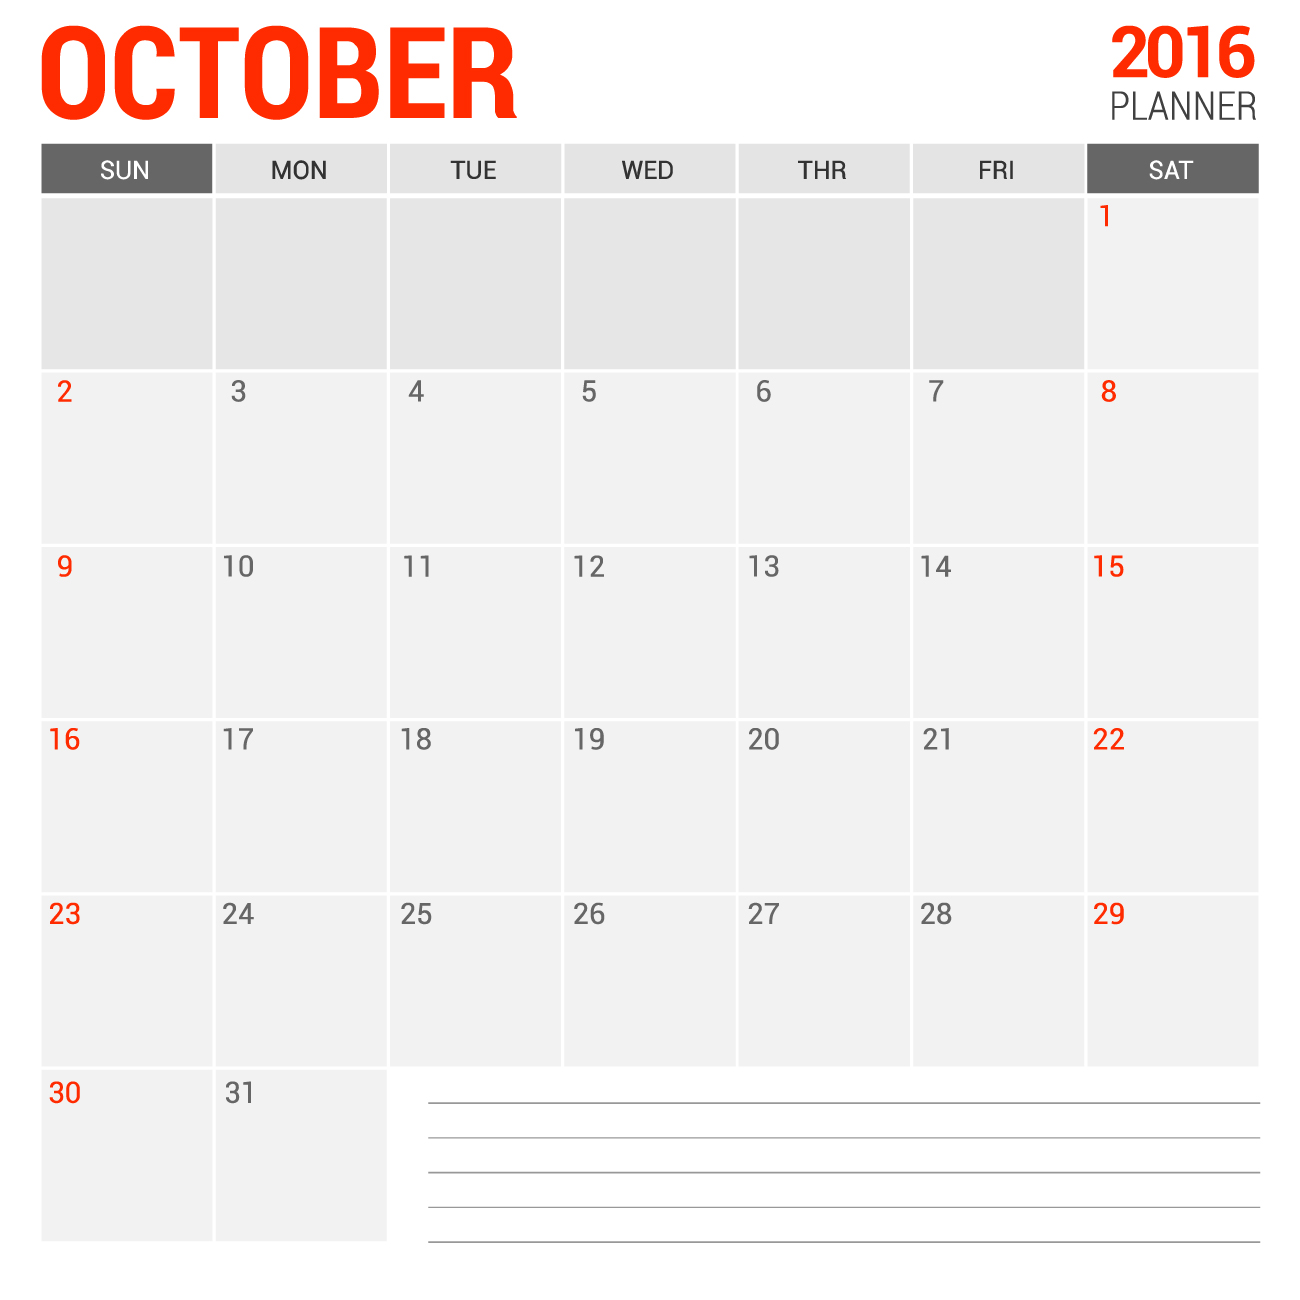 blank calendar October 2016 blank calendar pages blank calendar templates a blank calendar for October 2016 blank calendar by days ez printable calendar the printable calendar blank calendar on one page blank calendar 30 days blank calendar 31 days blank calendar 4 months per page blank 4 month calendar 2016